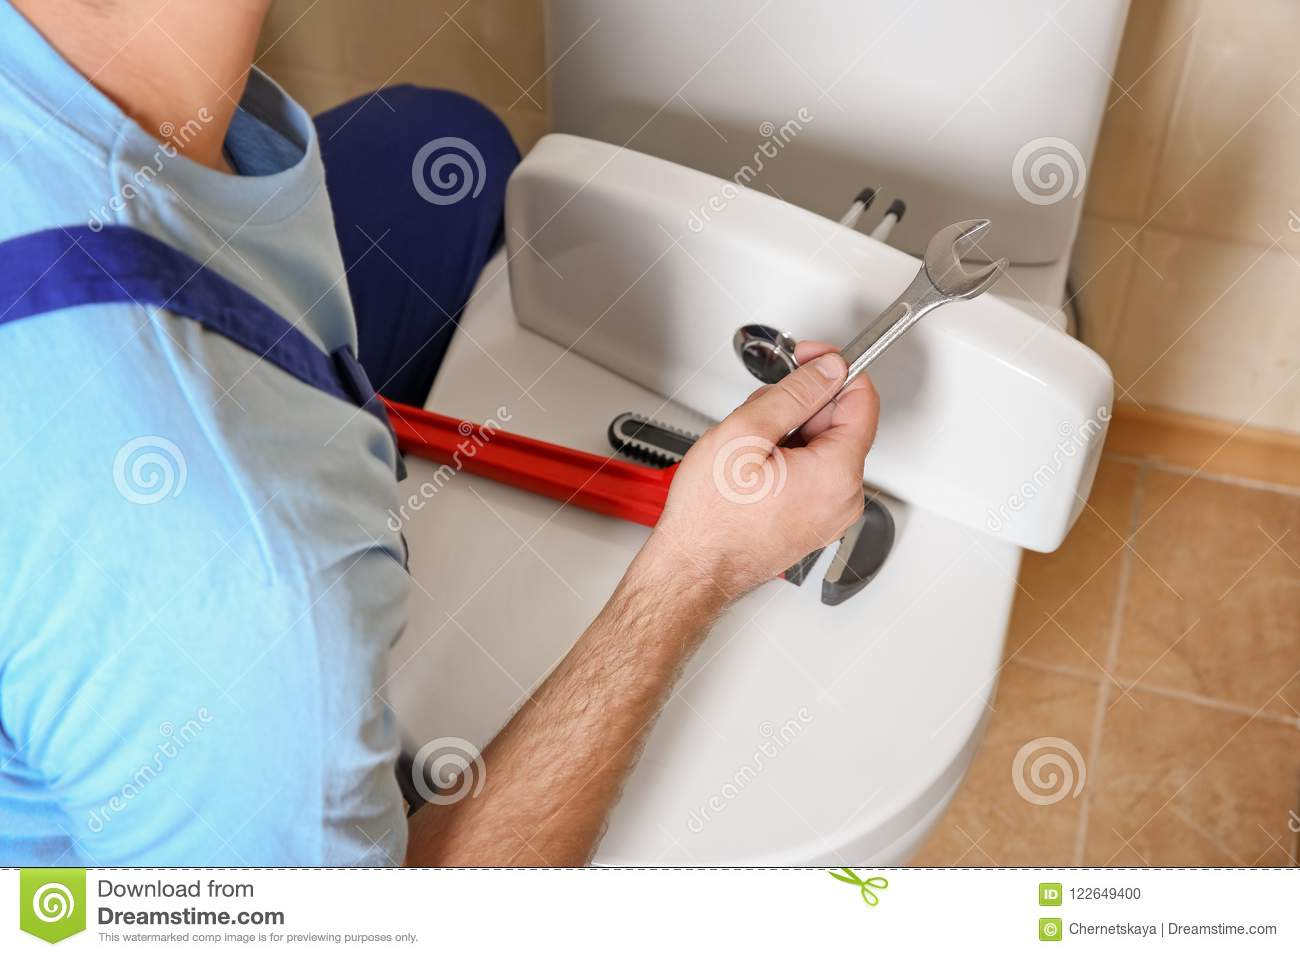 Plumber repairing toilet with wrench indoors